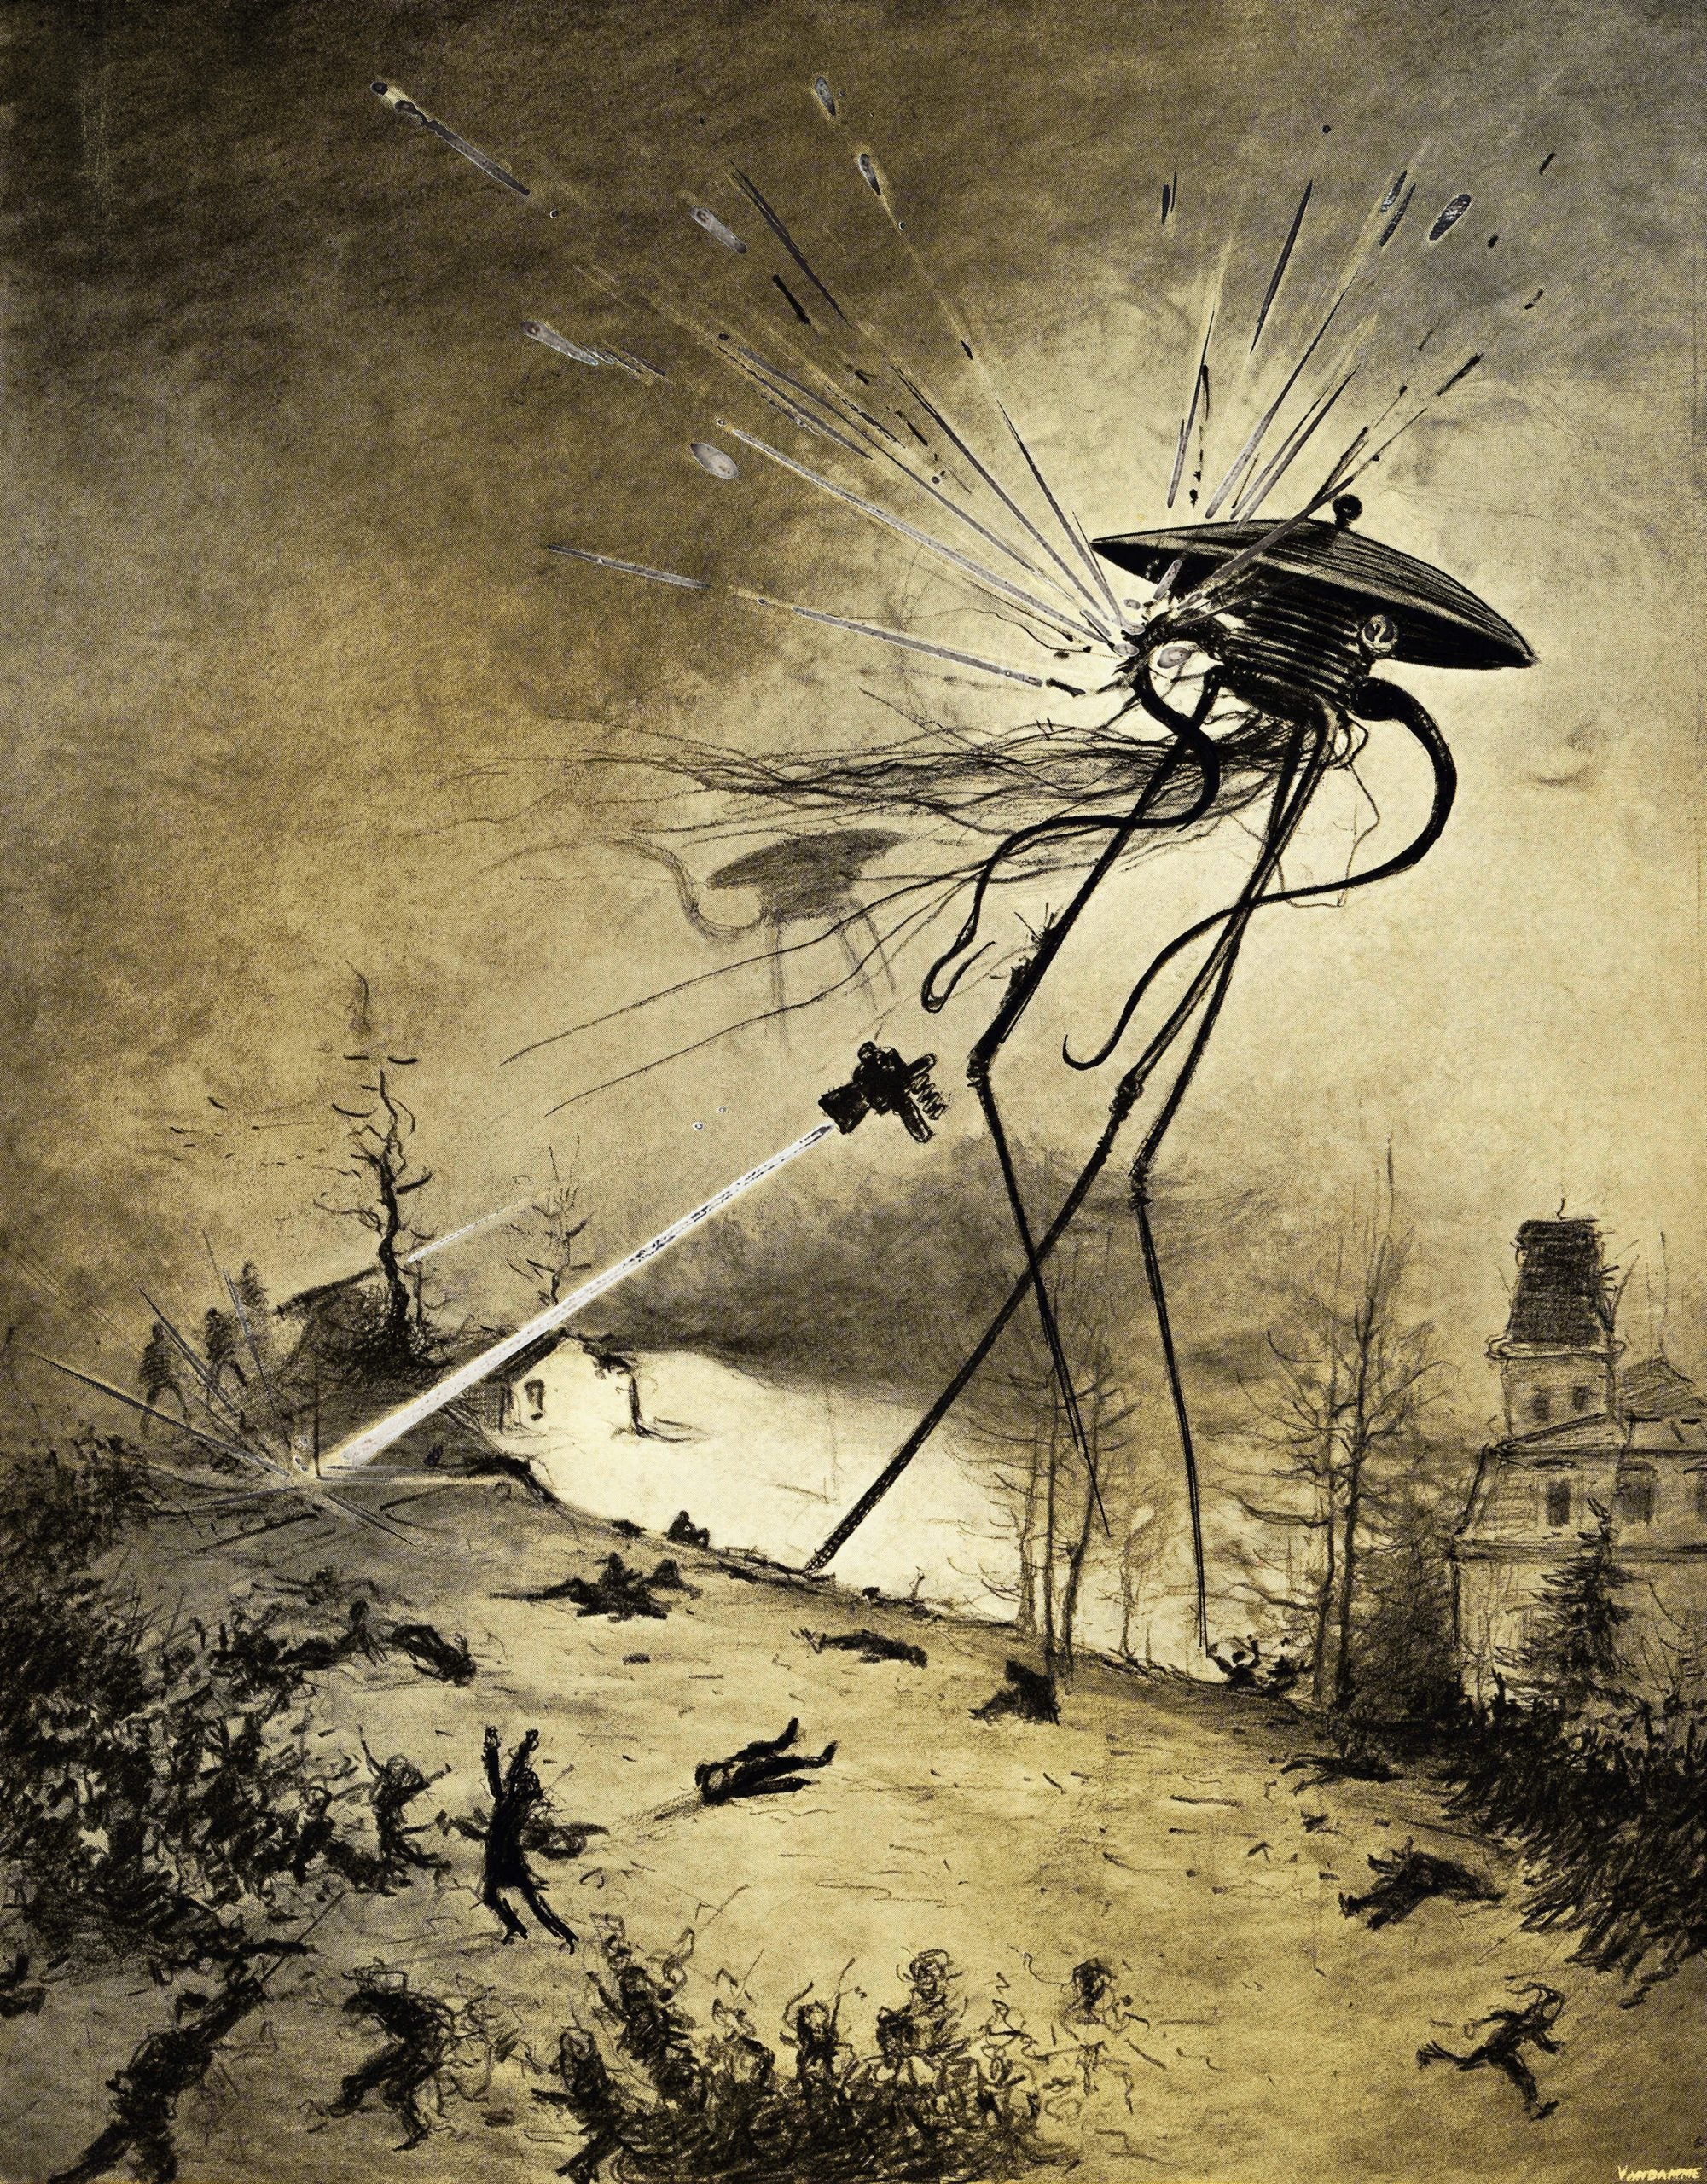 What The War of the Worlds means now